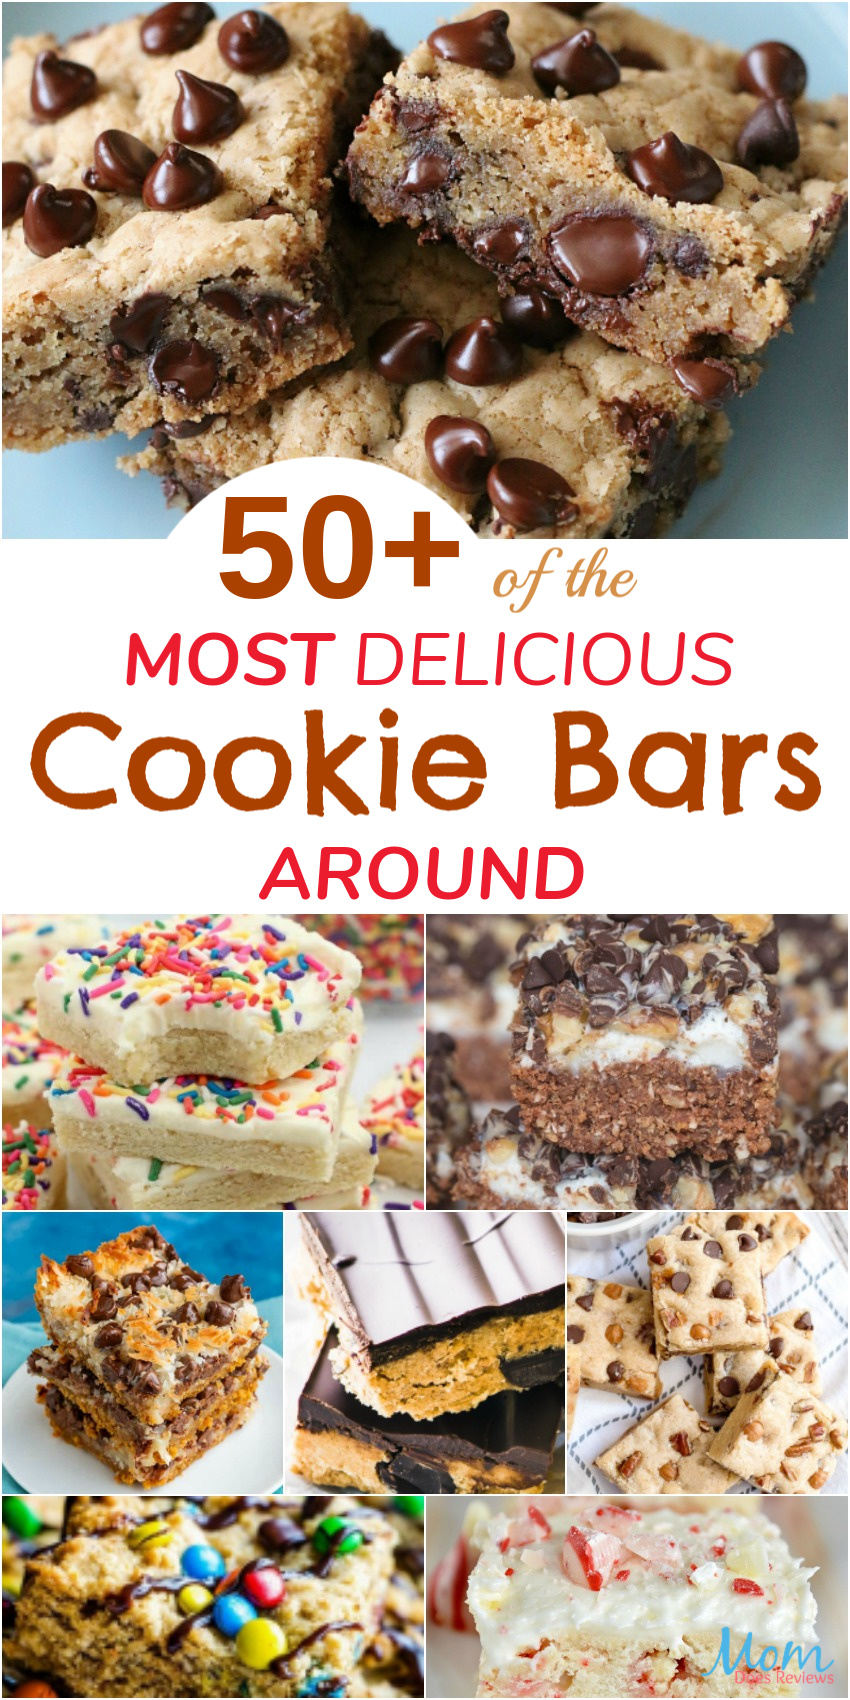 50+ of the Most Delicious Cookie Bars Around #recipes #desserts #foodie